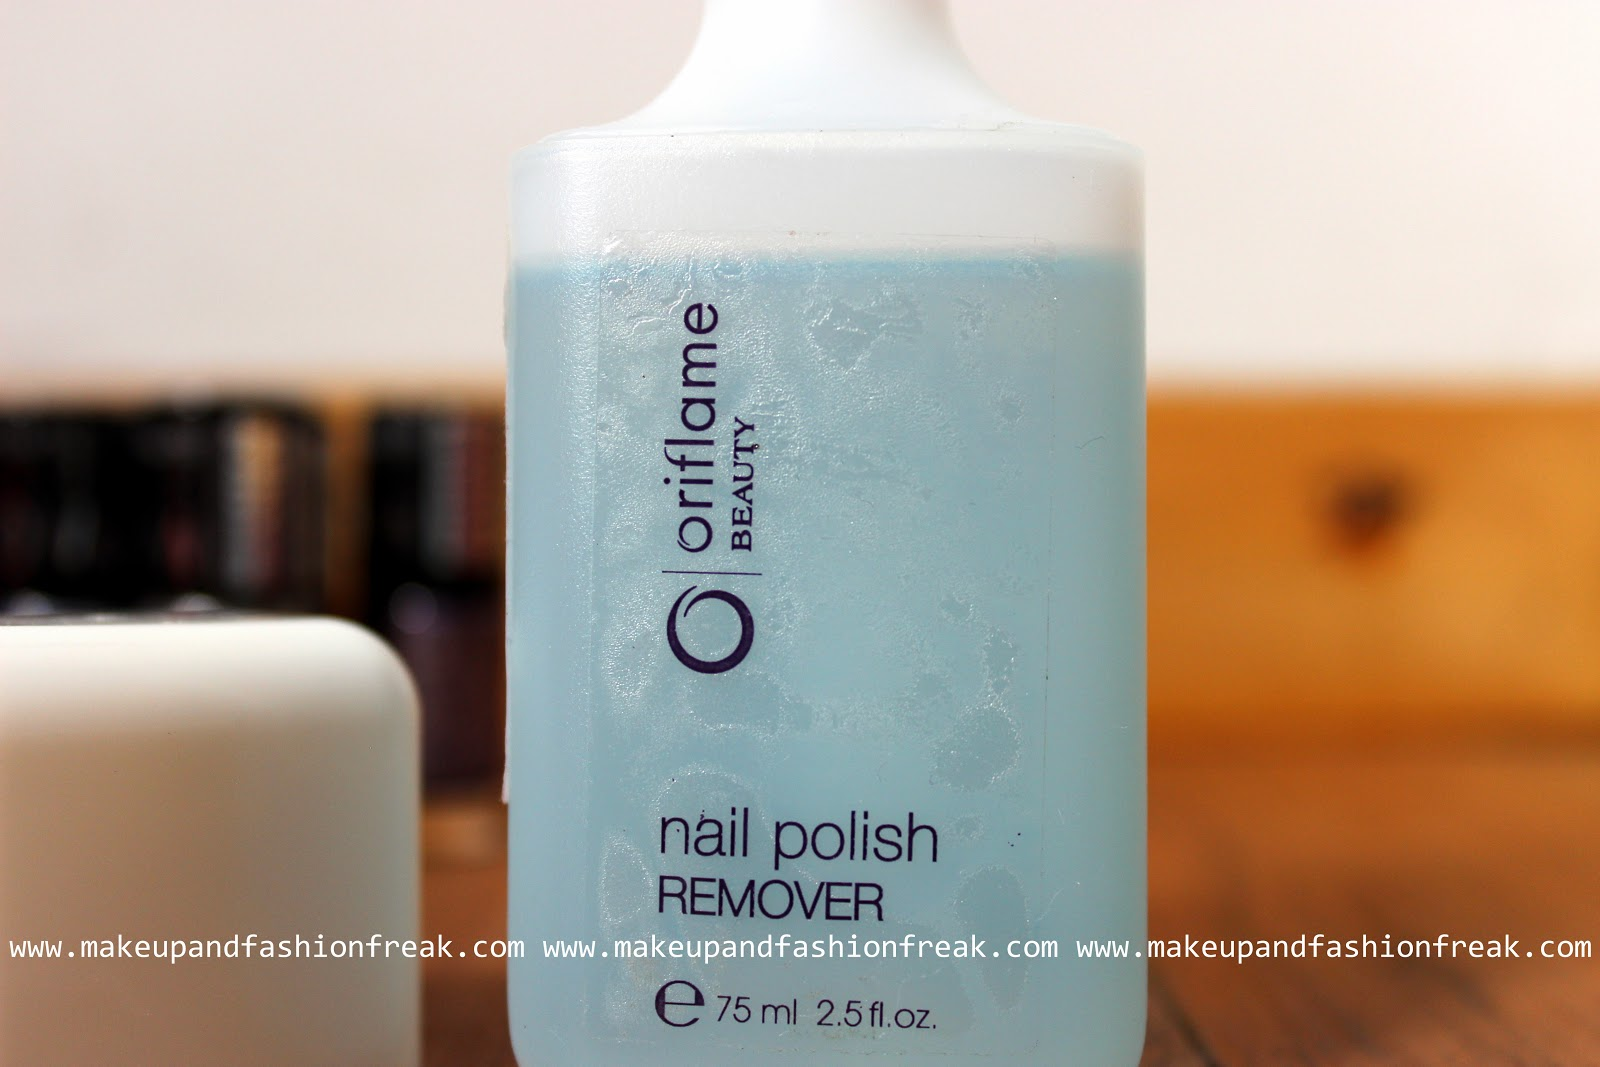 Makeup And Fashion Freak: Oriflame Beauty Nail Polish Remover: Review